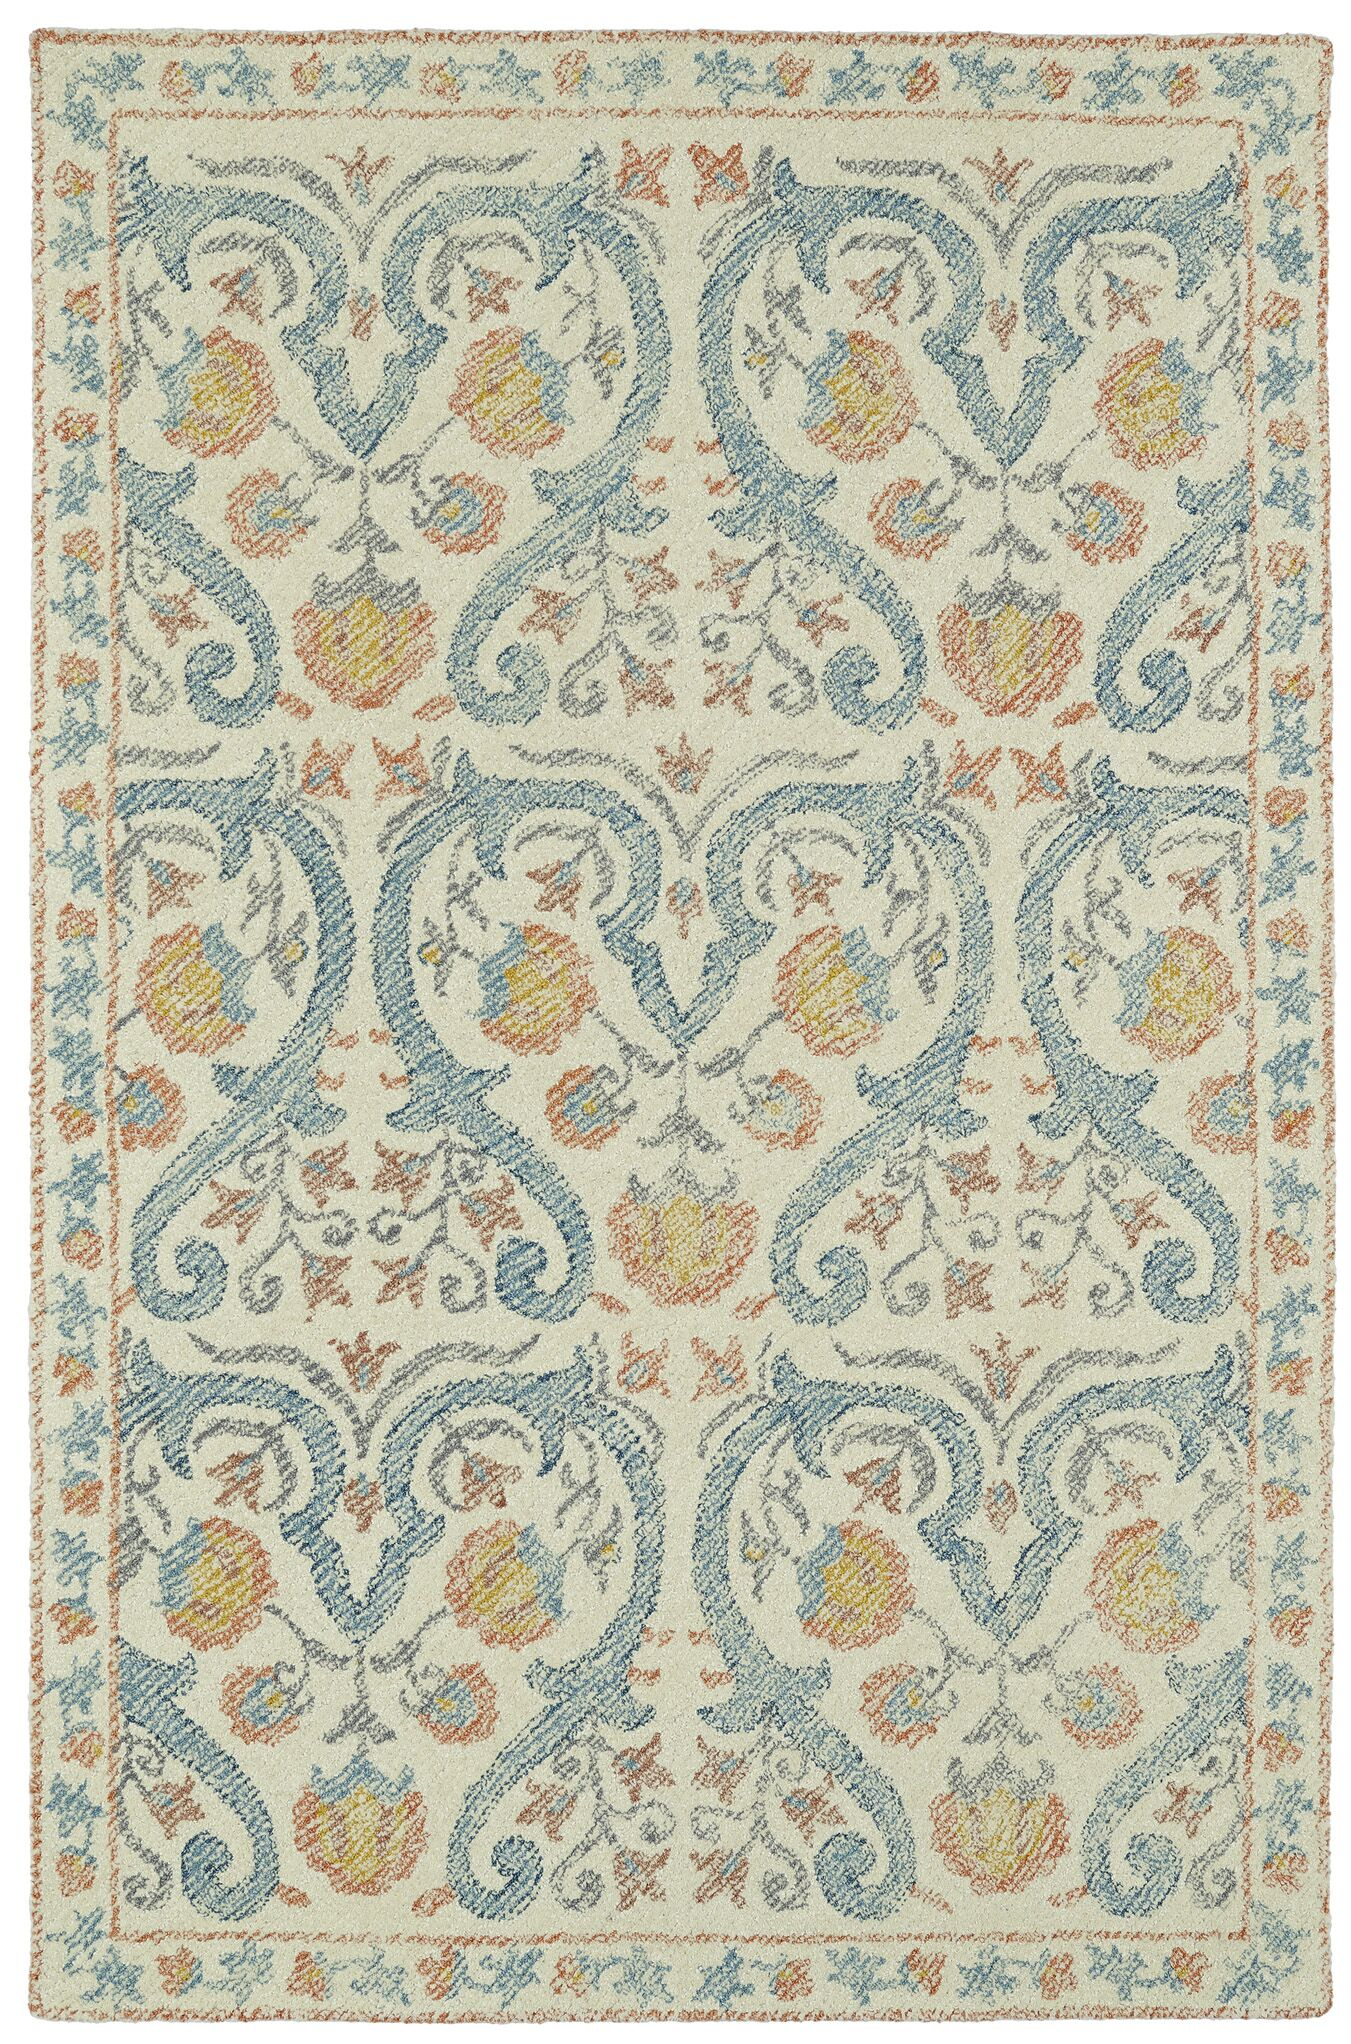 Locust Grove Hand-Tufted Beige/Blue Area Rug Rug Size: Rectangle 9' x 12'